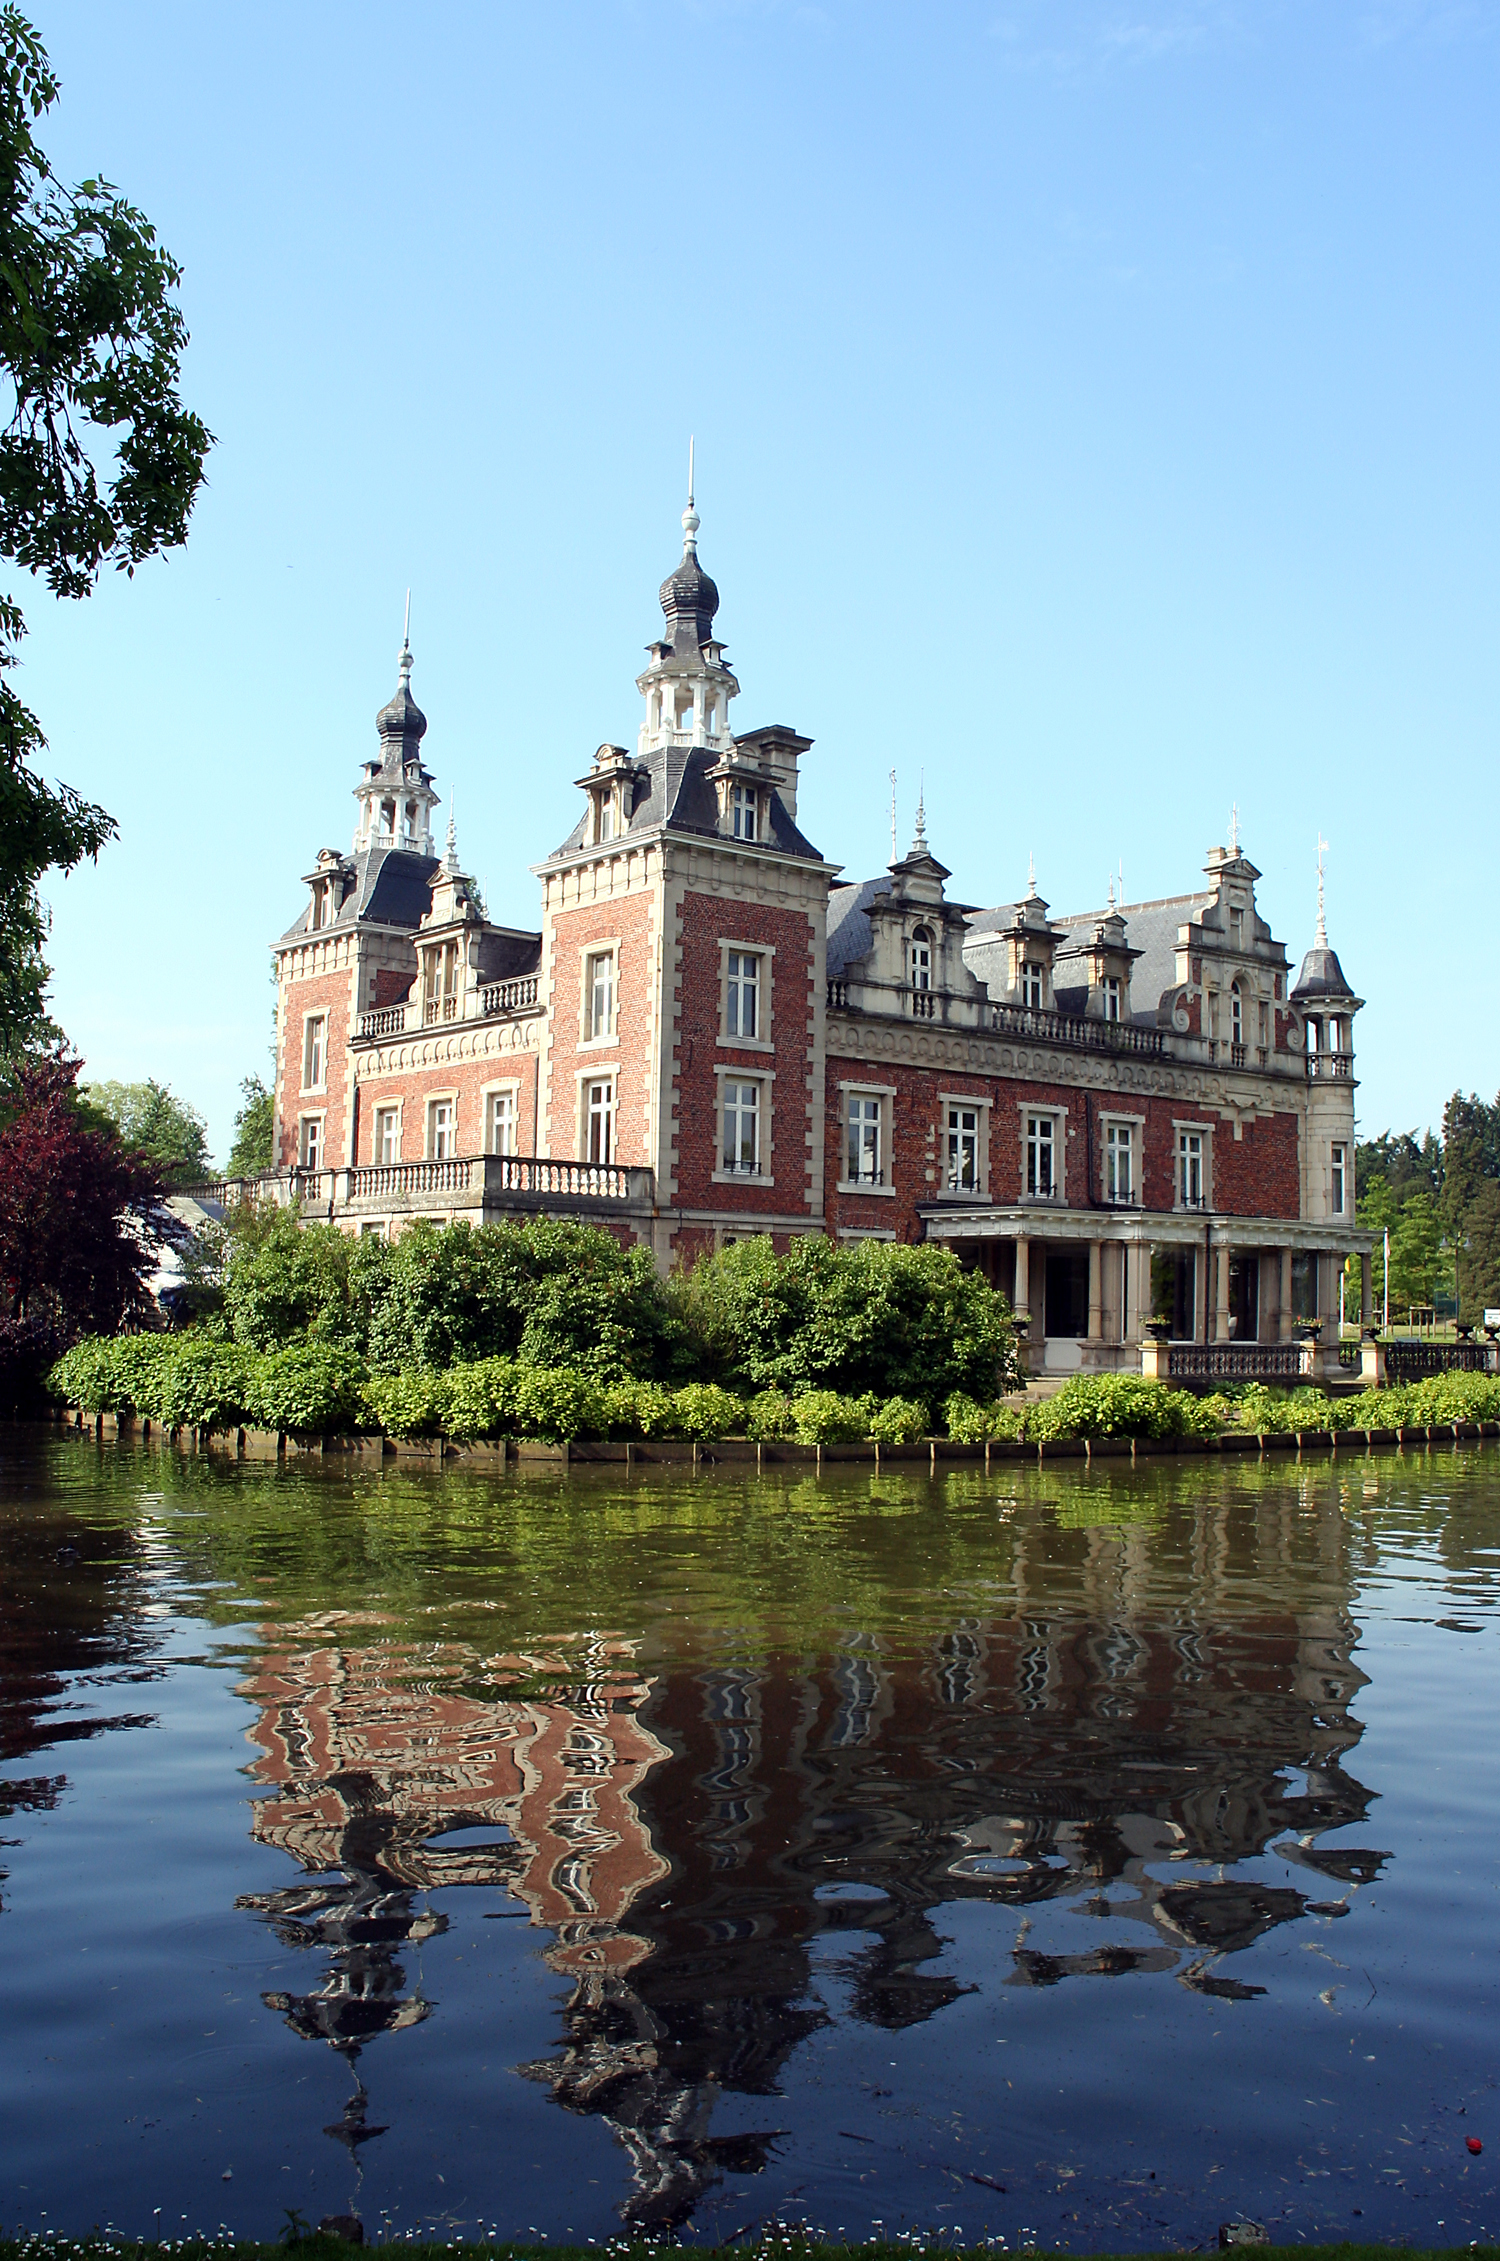 Palace on the lake in Belgium